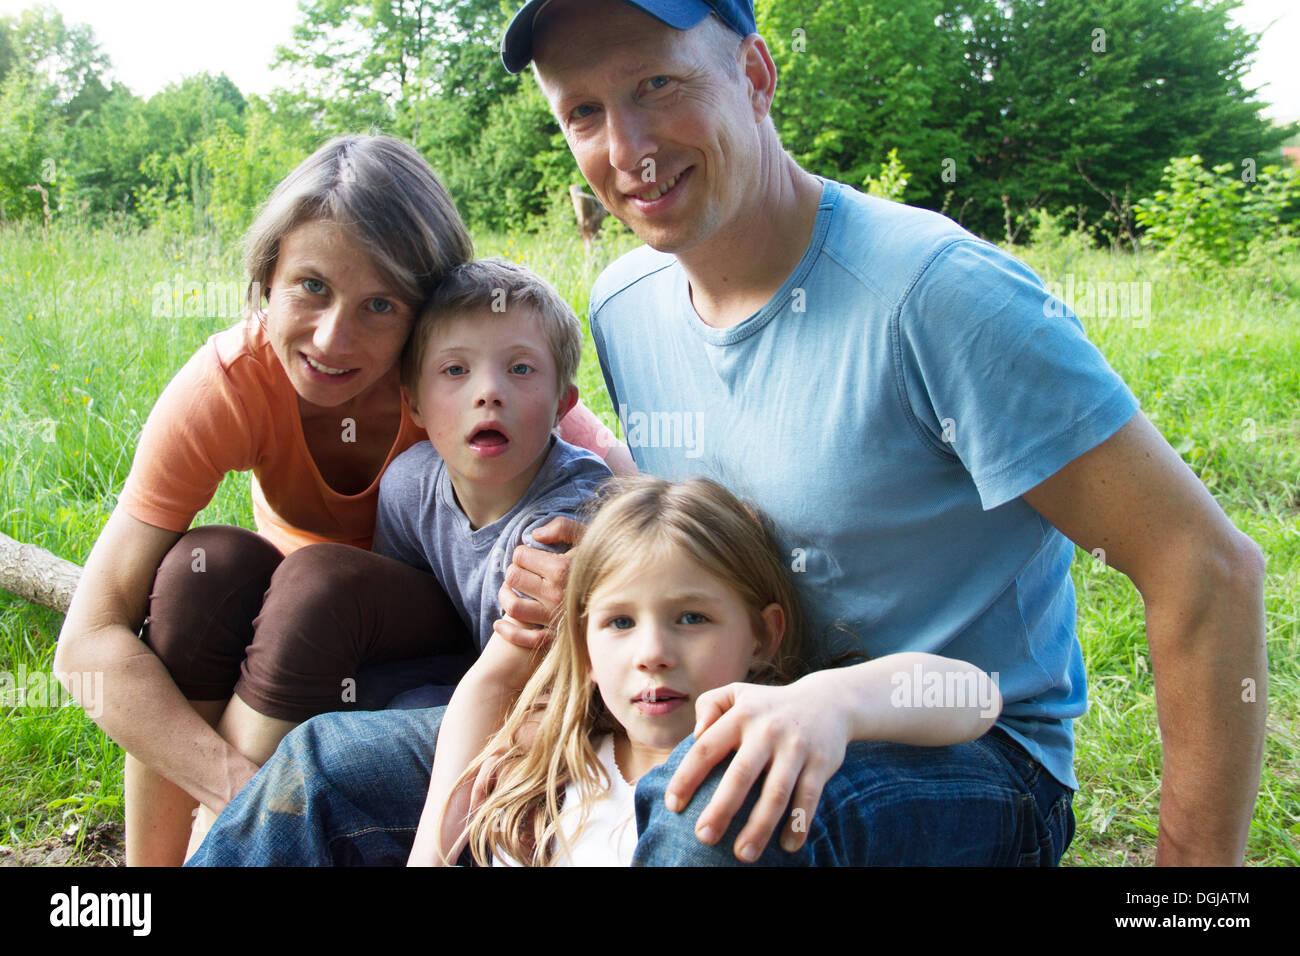 Outdoor portrait of family with two children - Stock Image